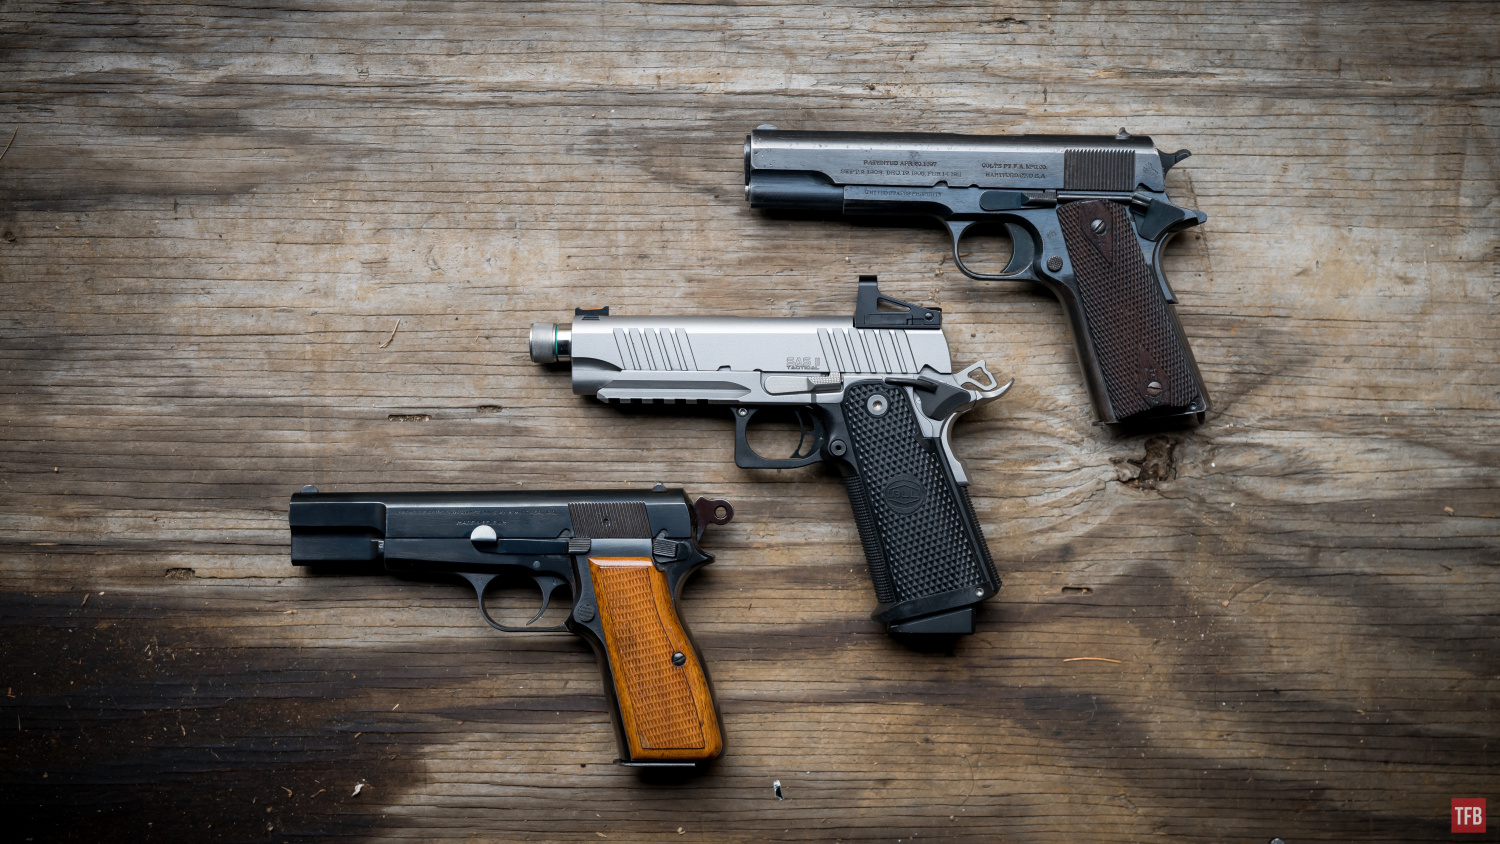 SILENCER SATURDAY #148: Quiet Time With The 9mm Bul Armory Double Stack 1911